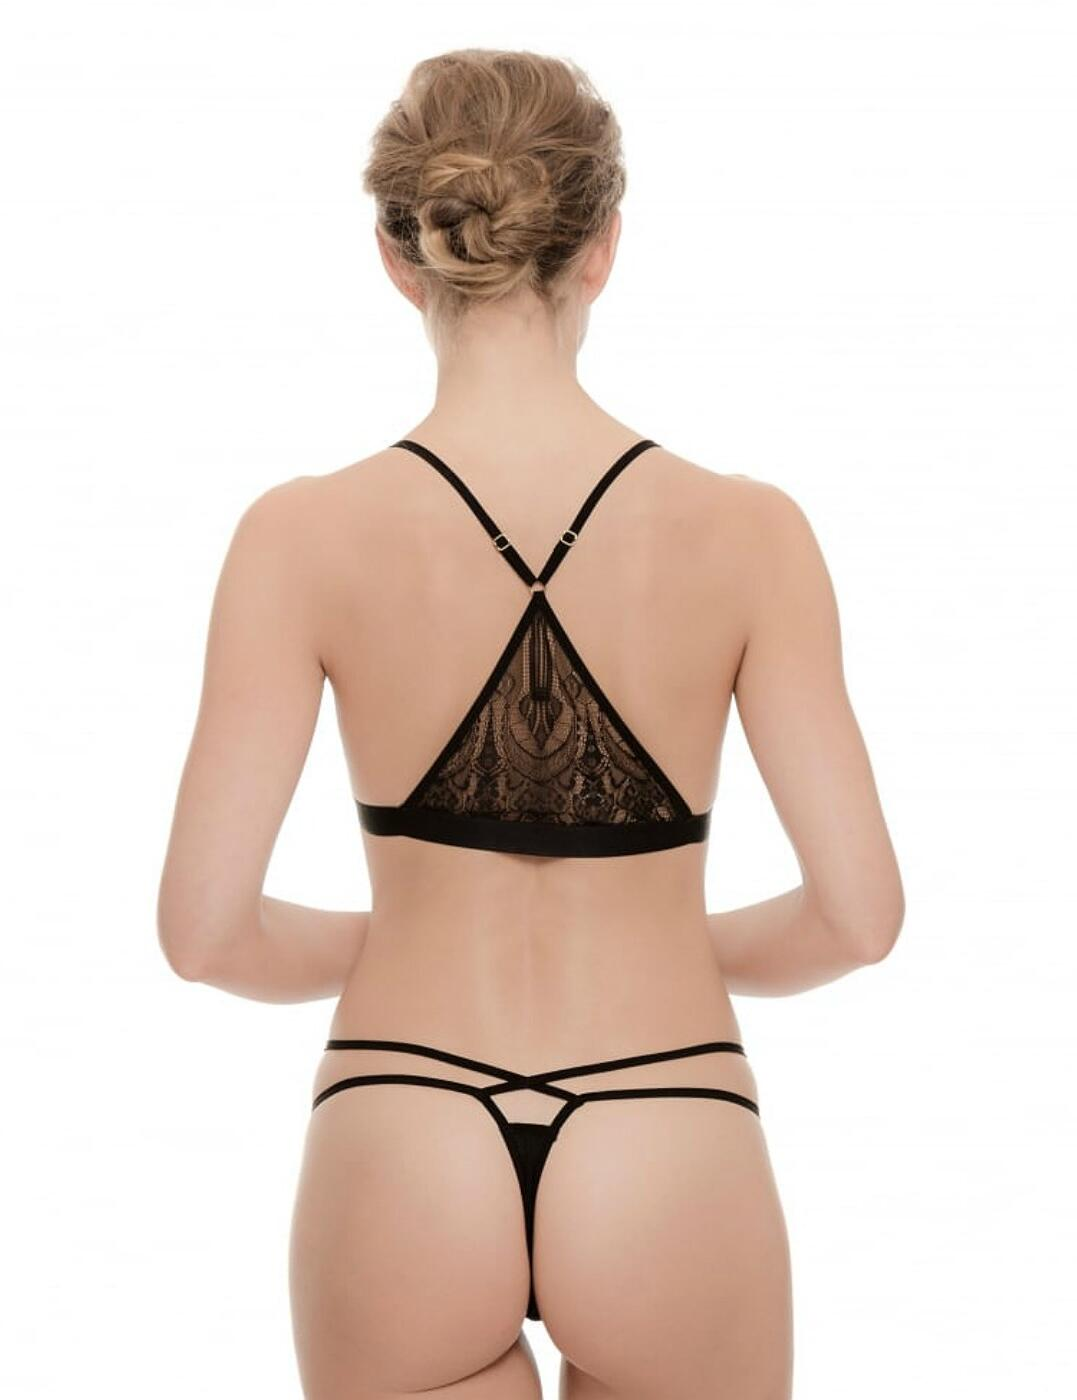 Ultimo Tokyo Nights Suki Bralette And Thong Set - Belle Lingerie 6bf9a3ea4